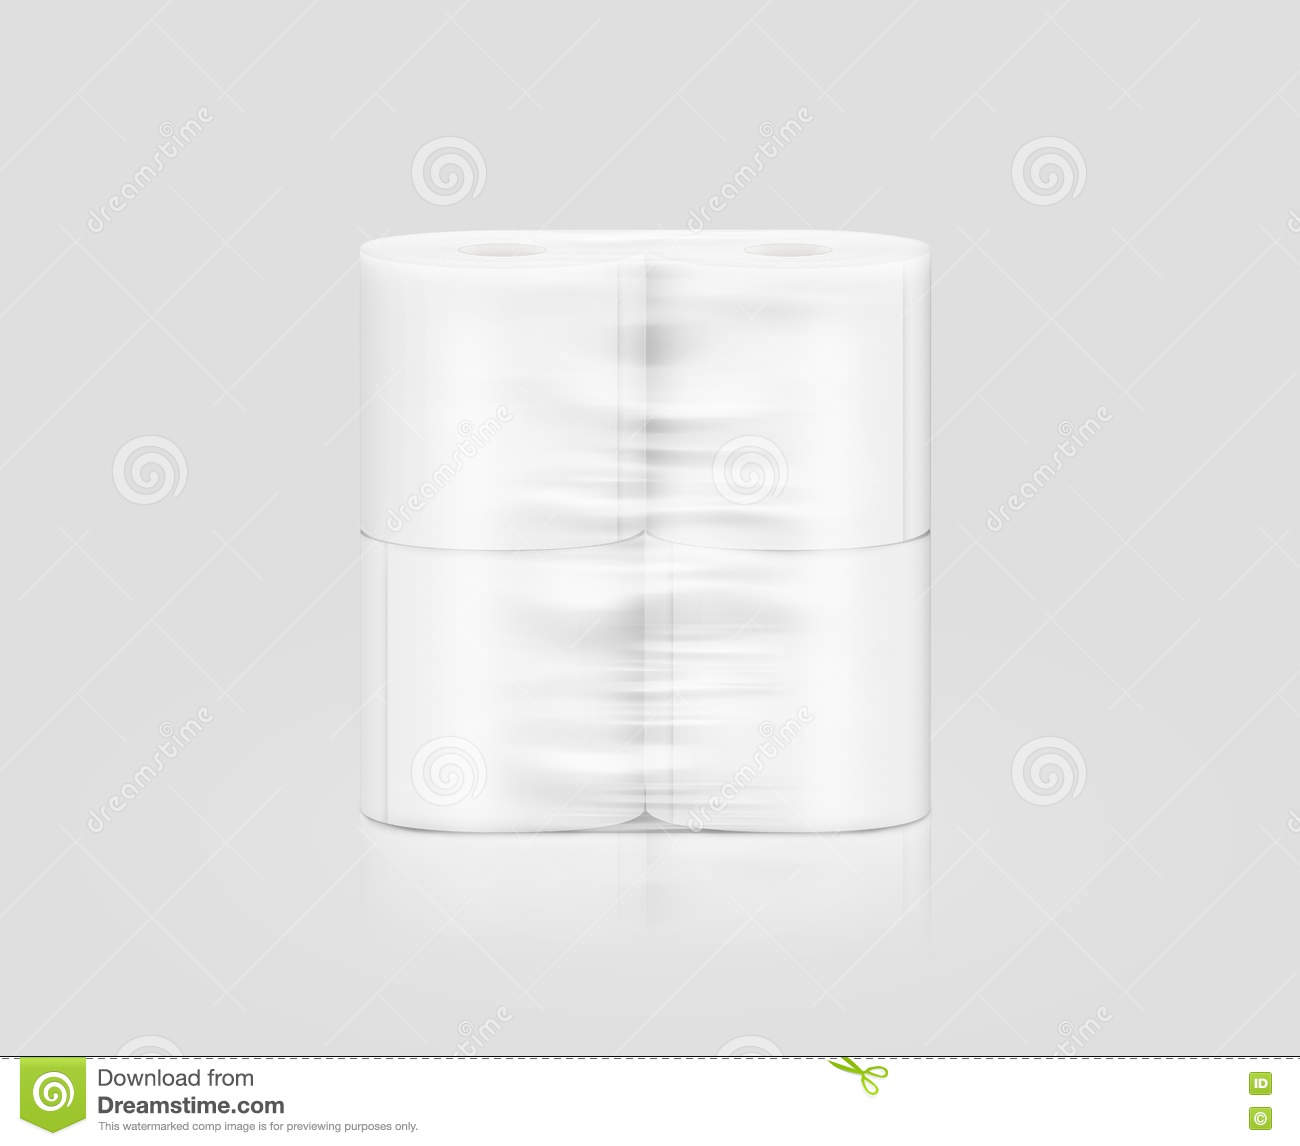 Blank White Toilet Paper Roll Packaging Mockup Clipping